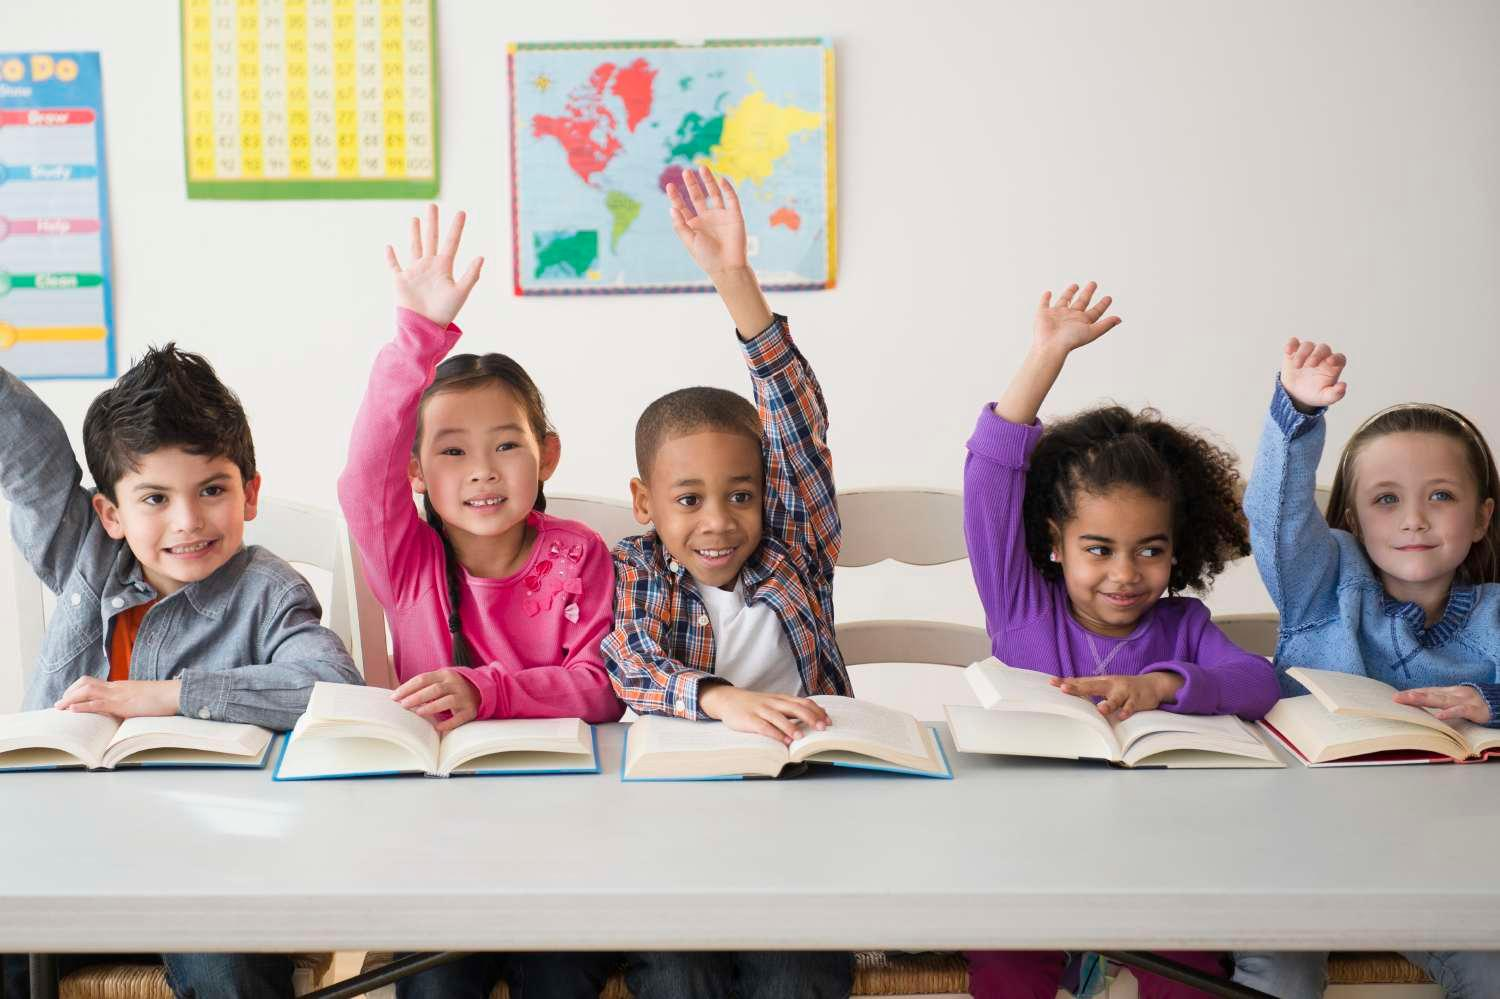 Young students in classroom with books and raising hands